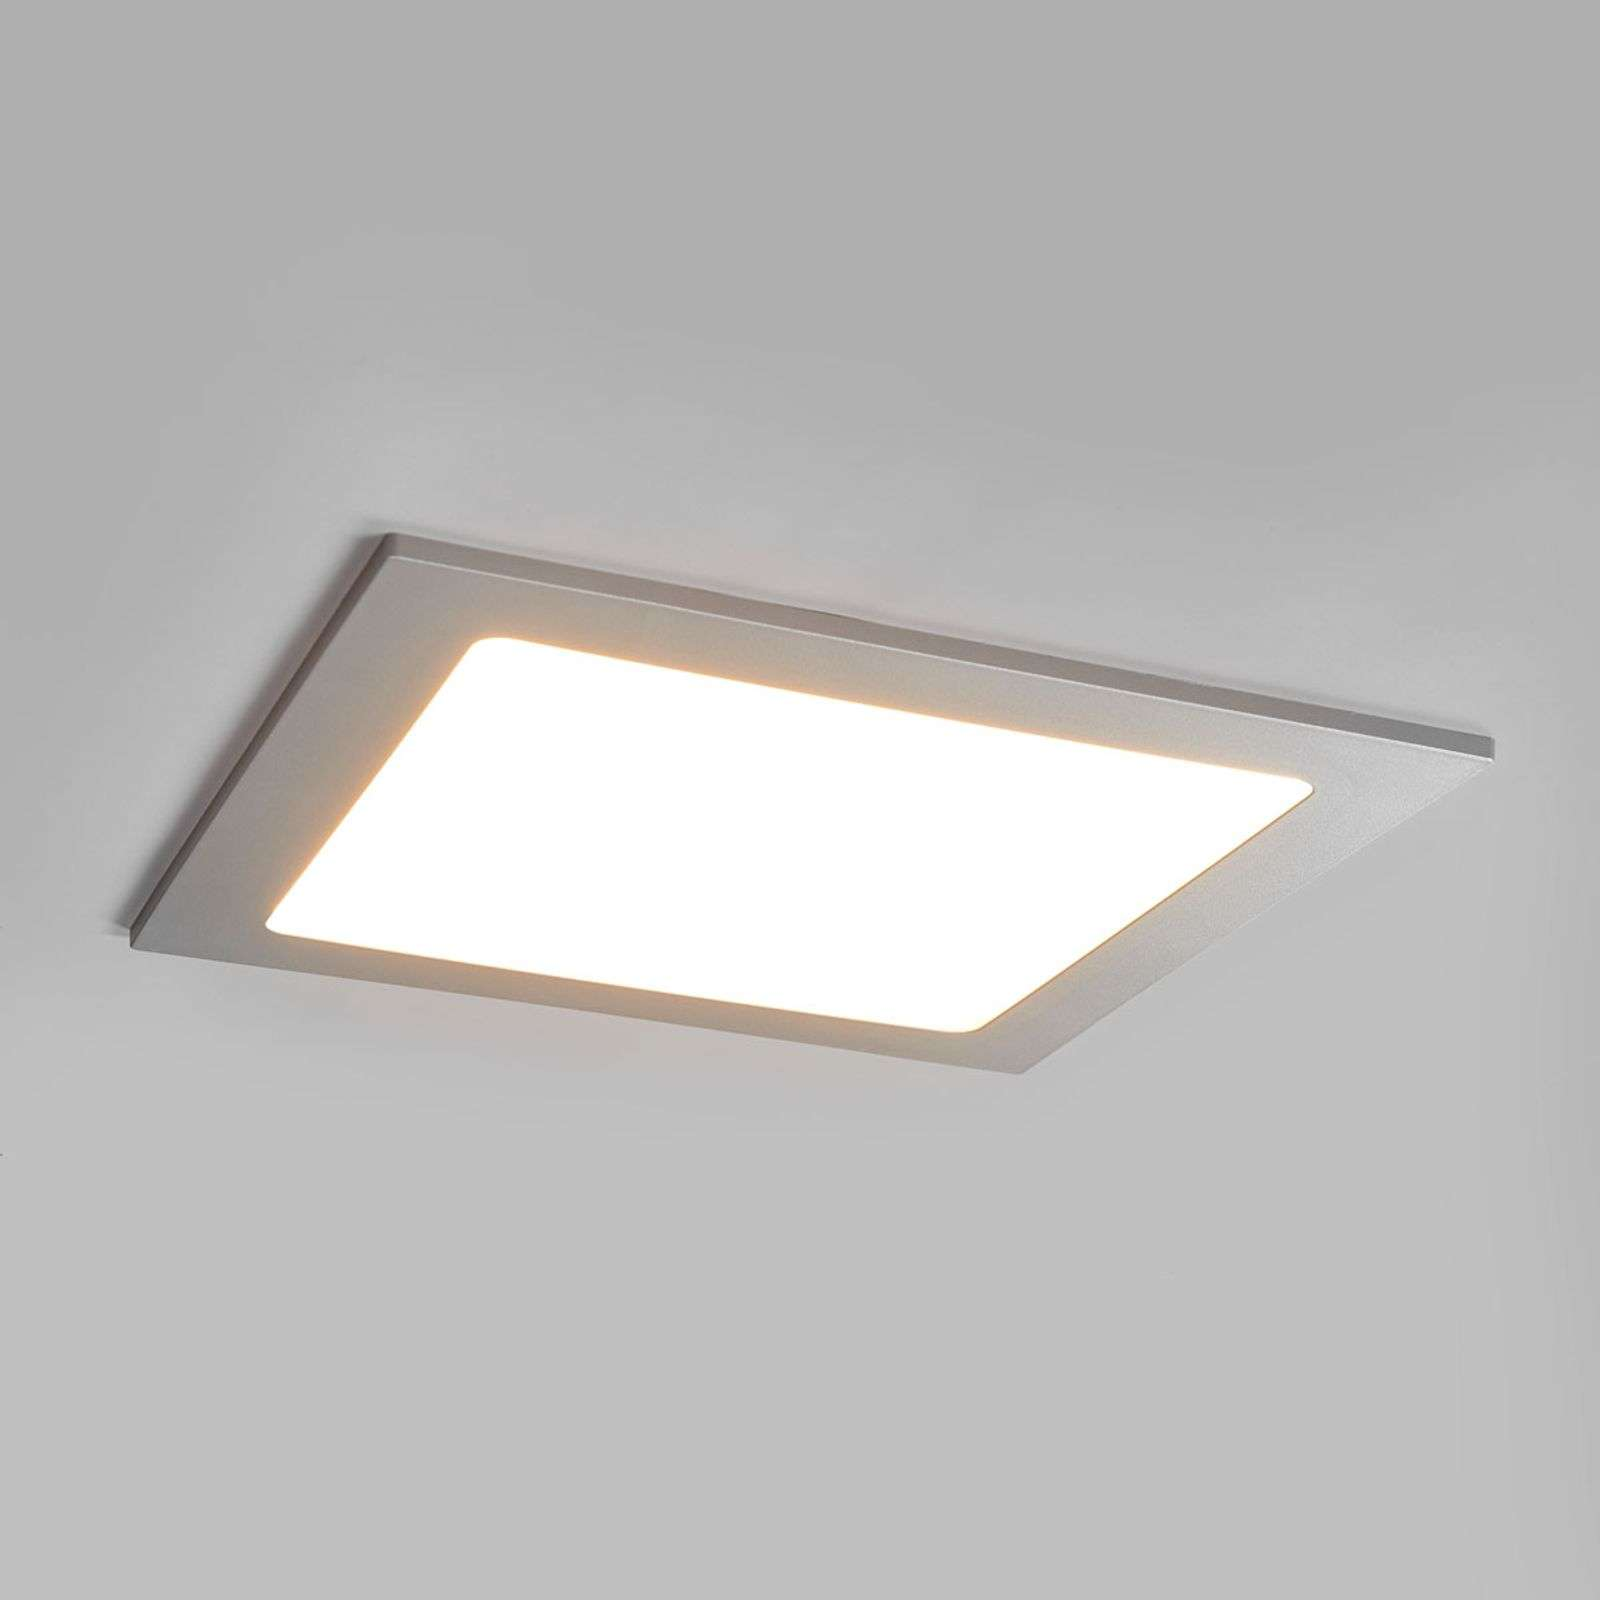 Lampada LED downlight Joki color argento IP44